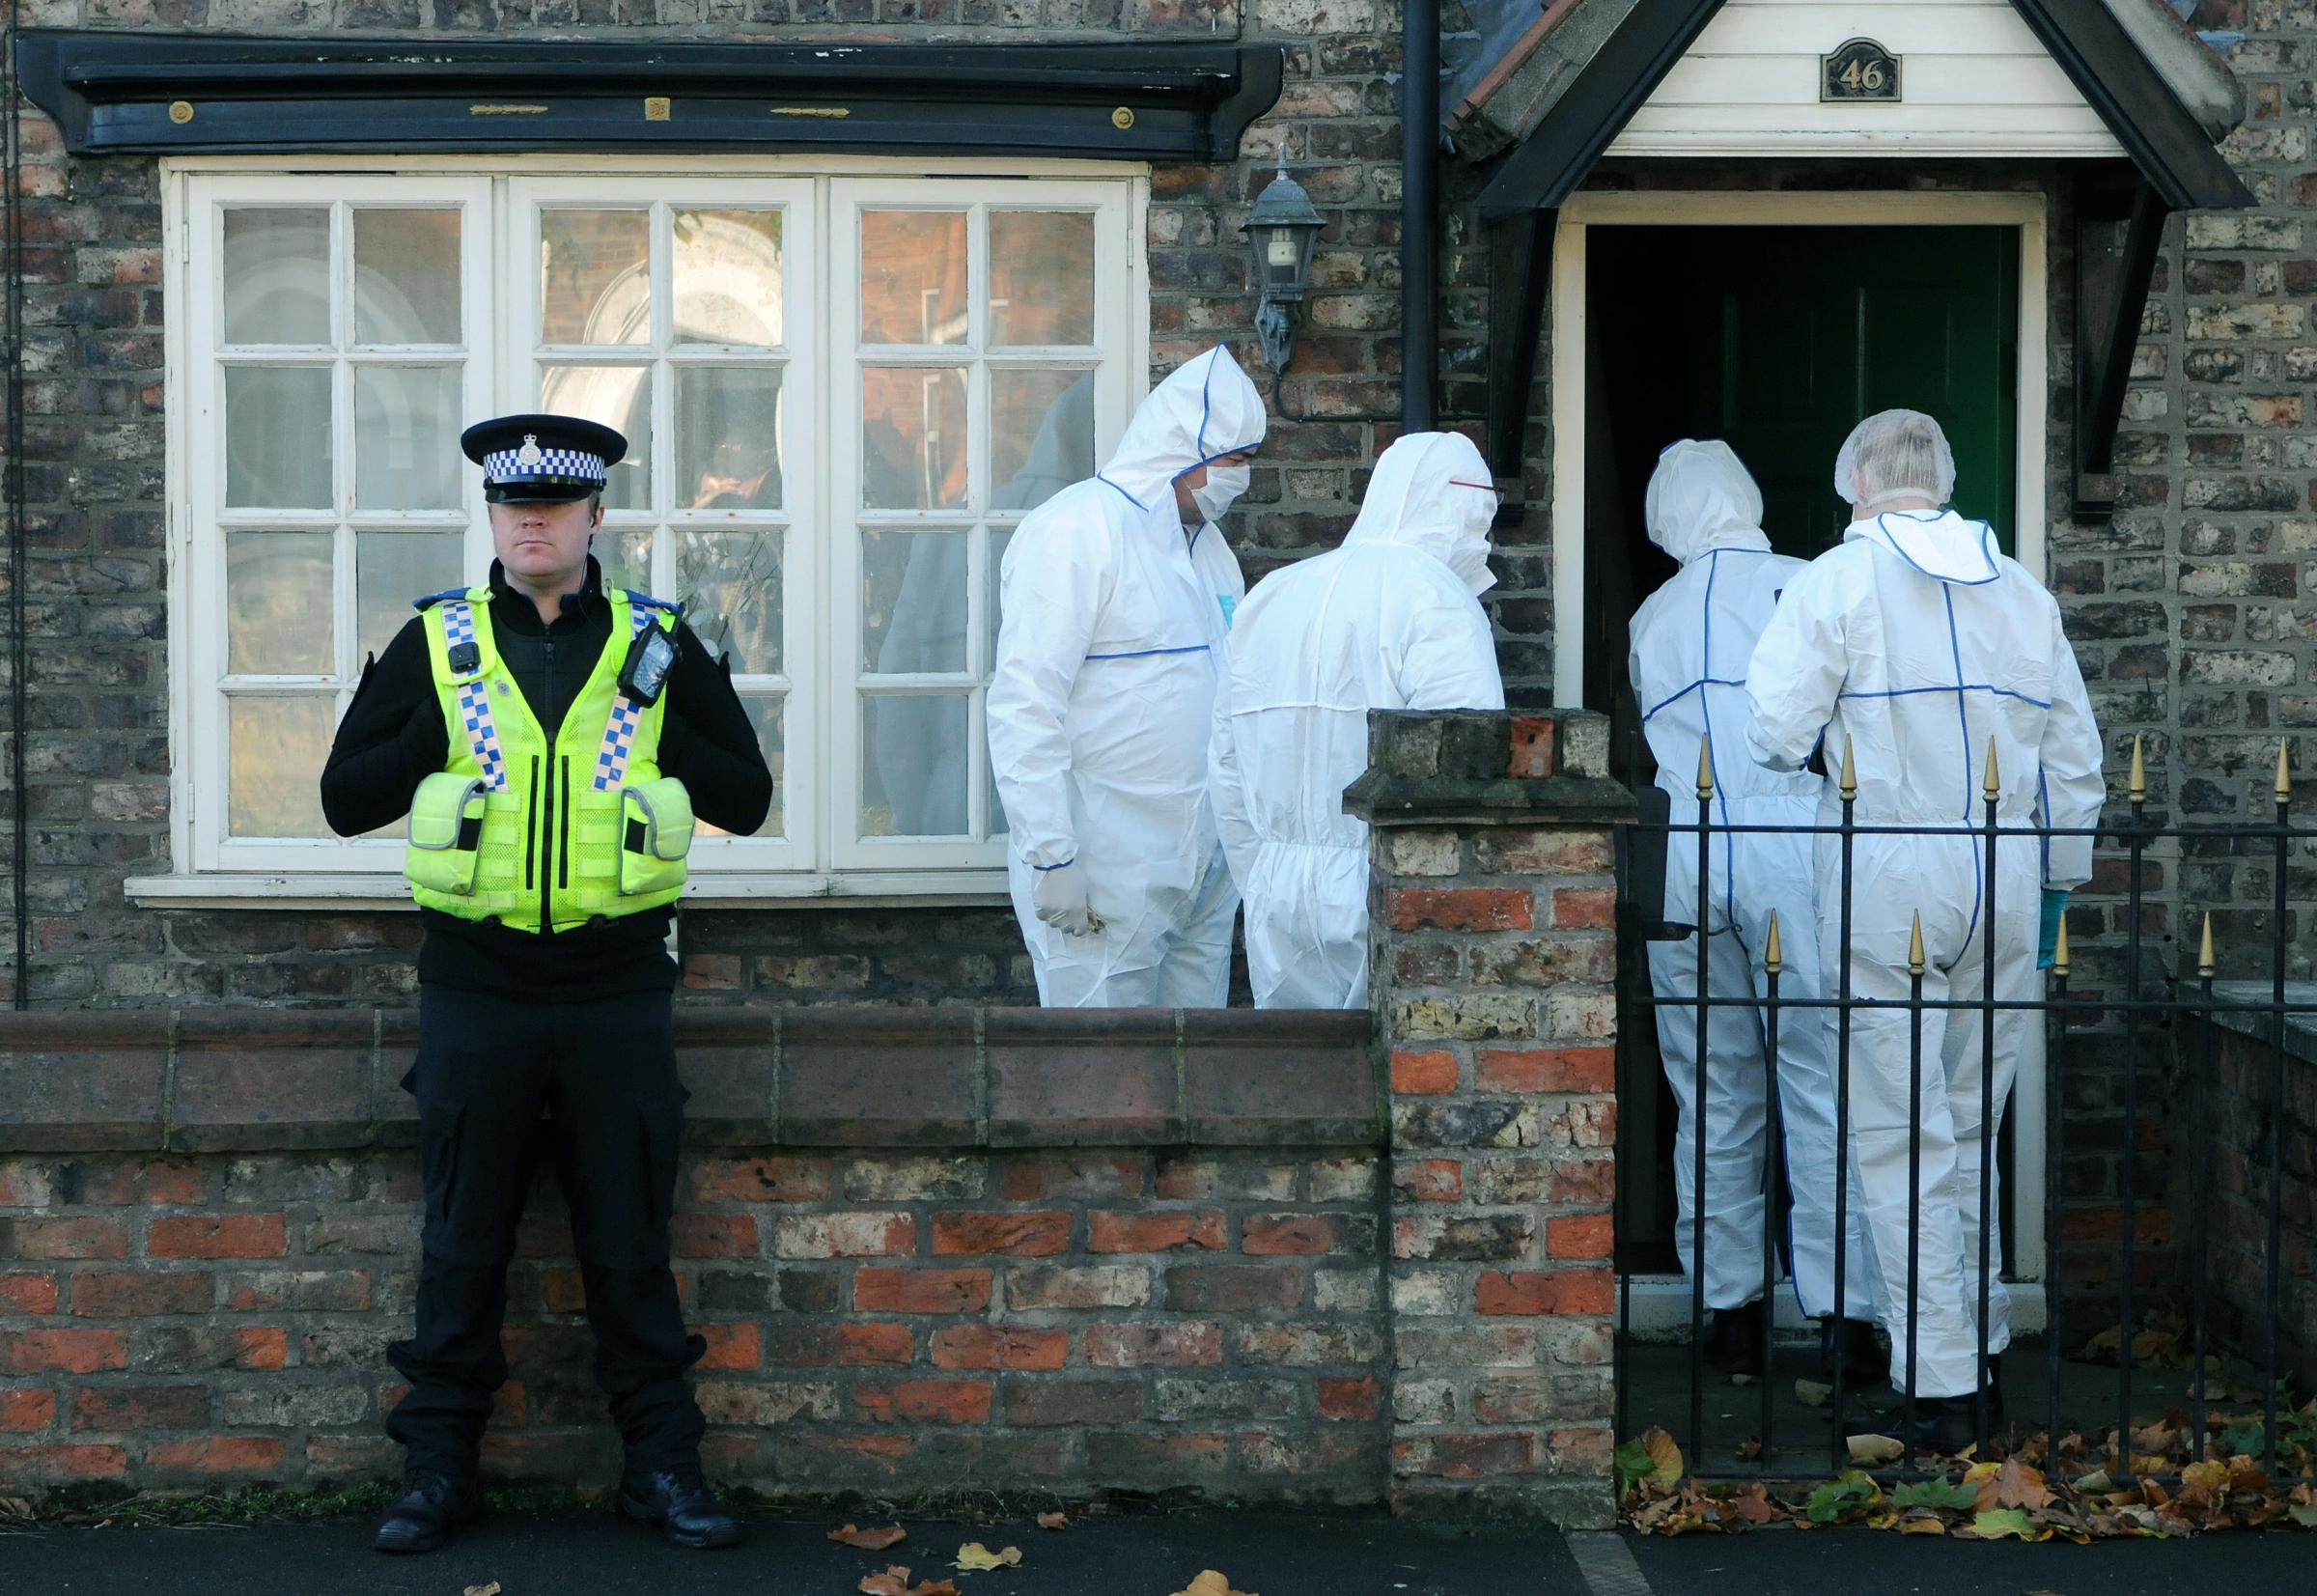 York Press: Police begin new examination of Claudia Lawrence's house